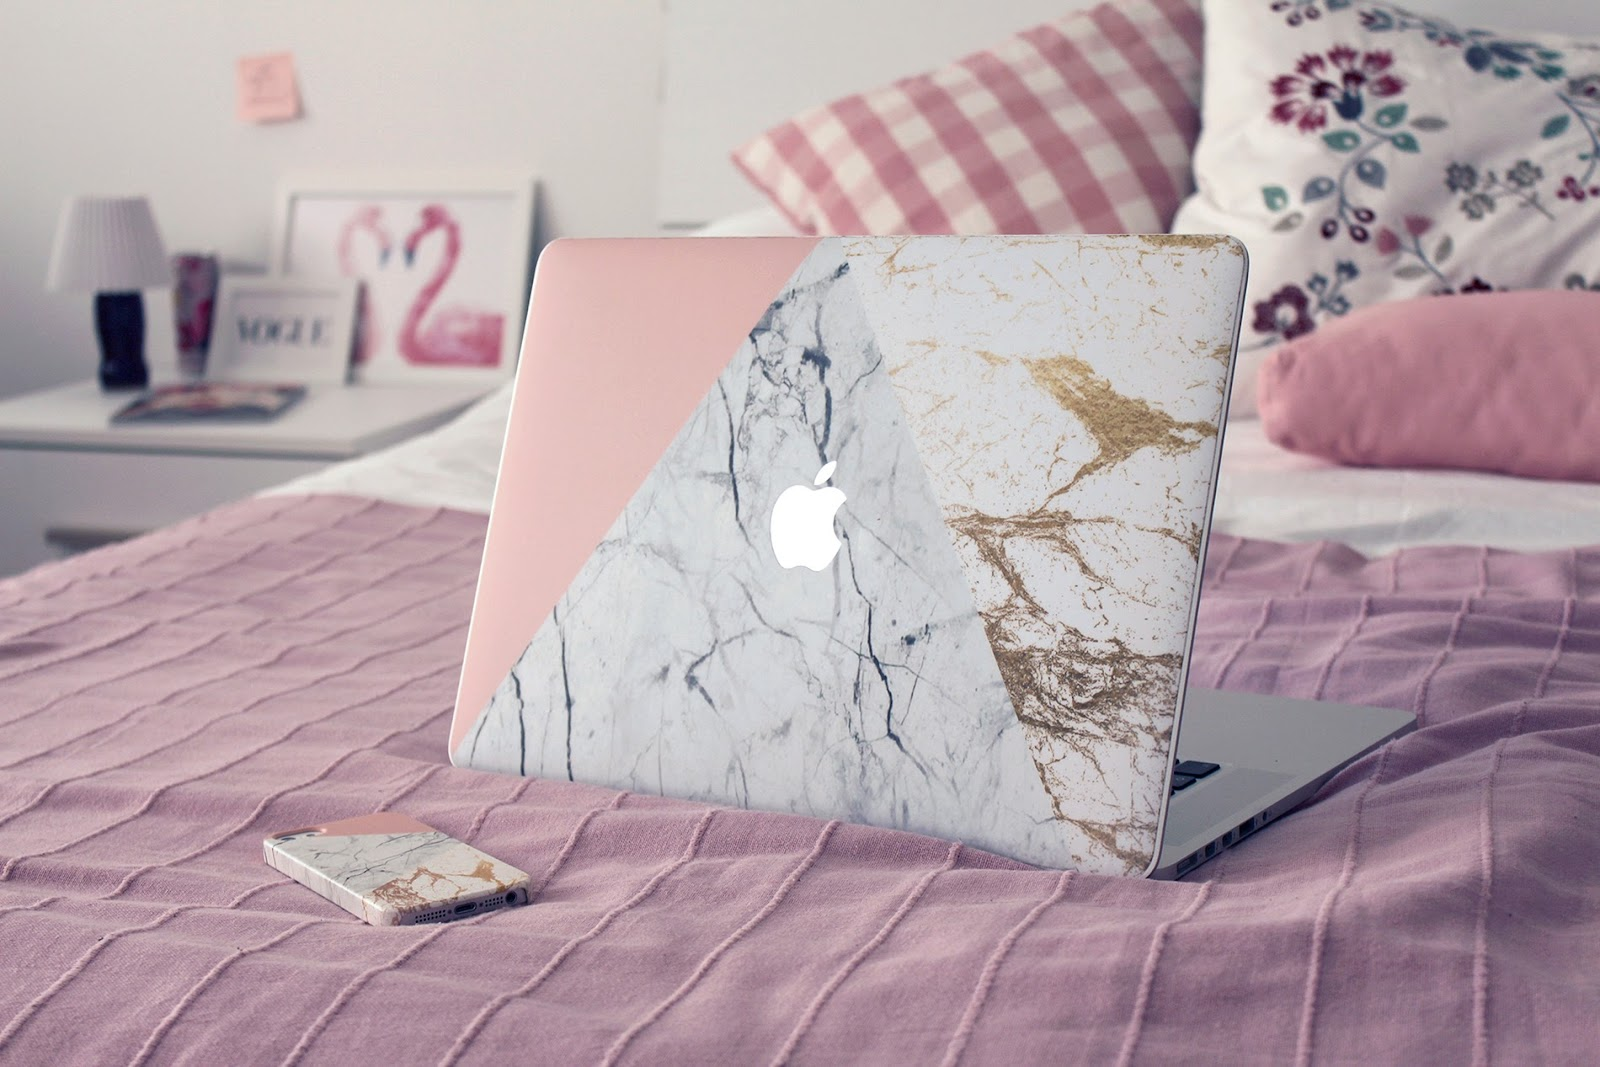 fashion style blogger italian girl italy trend vogue glamour pescara technology caseapp cover iphone 5 6 6s macbook pro sudio sweden earphones rose gold music auricolari interior design idea flamingo pink